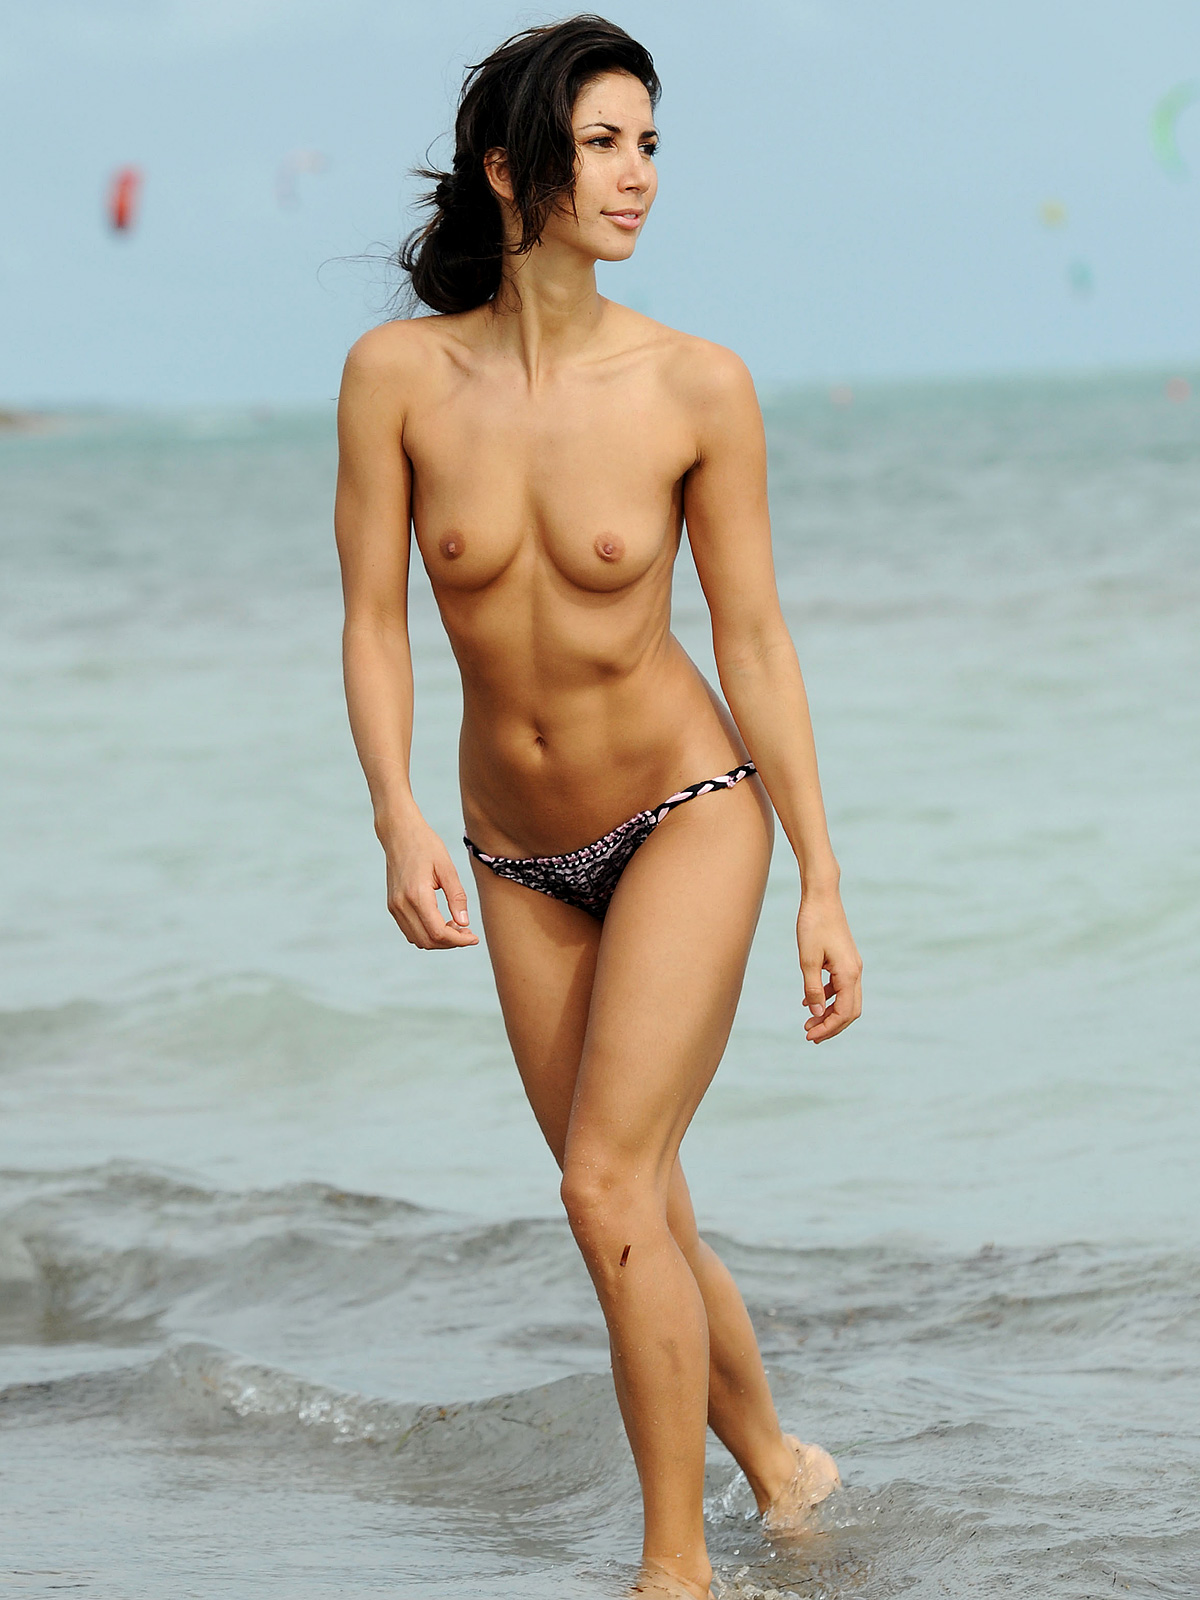 Leilani dowding topless nude (42 photos)